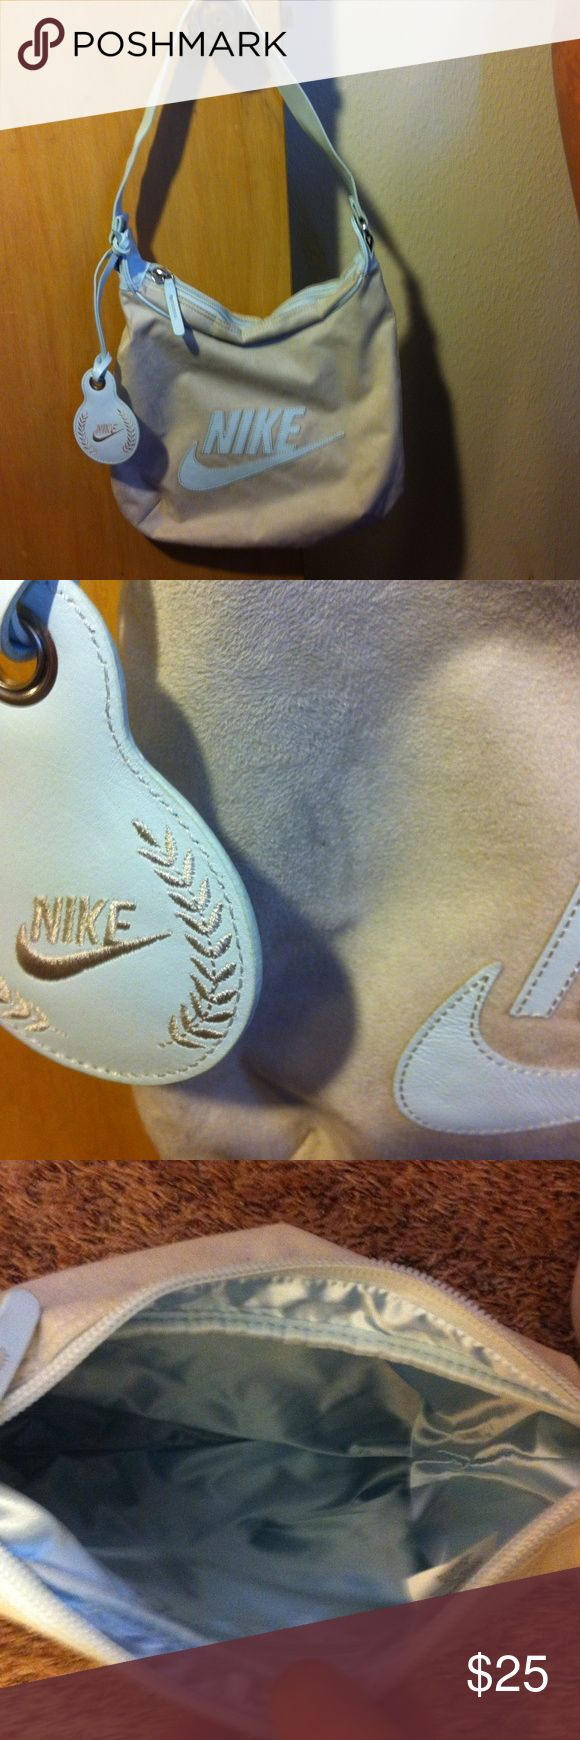 """Nike purse Vintage, 1980's, never used! Light blue (looks different colors in different lights), body is a soft material (pic 2) and handle/tag/logo are leather. Interior is baby blue satin looking with 1 zip pocket. H 11"""" x W 13"""", handle drop 1' Nike Bags"""